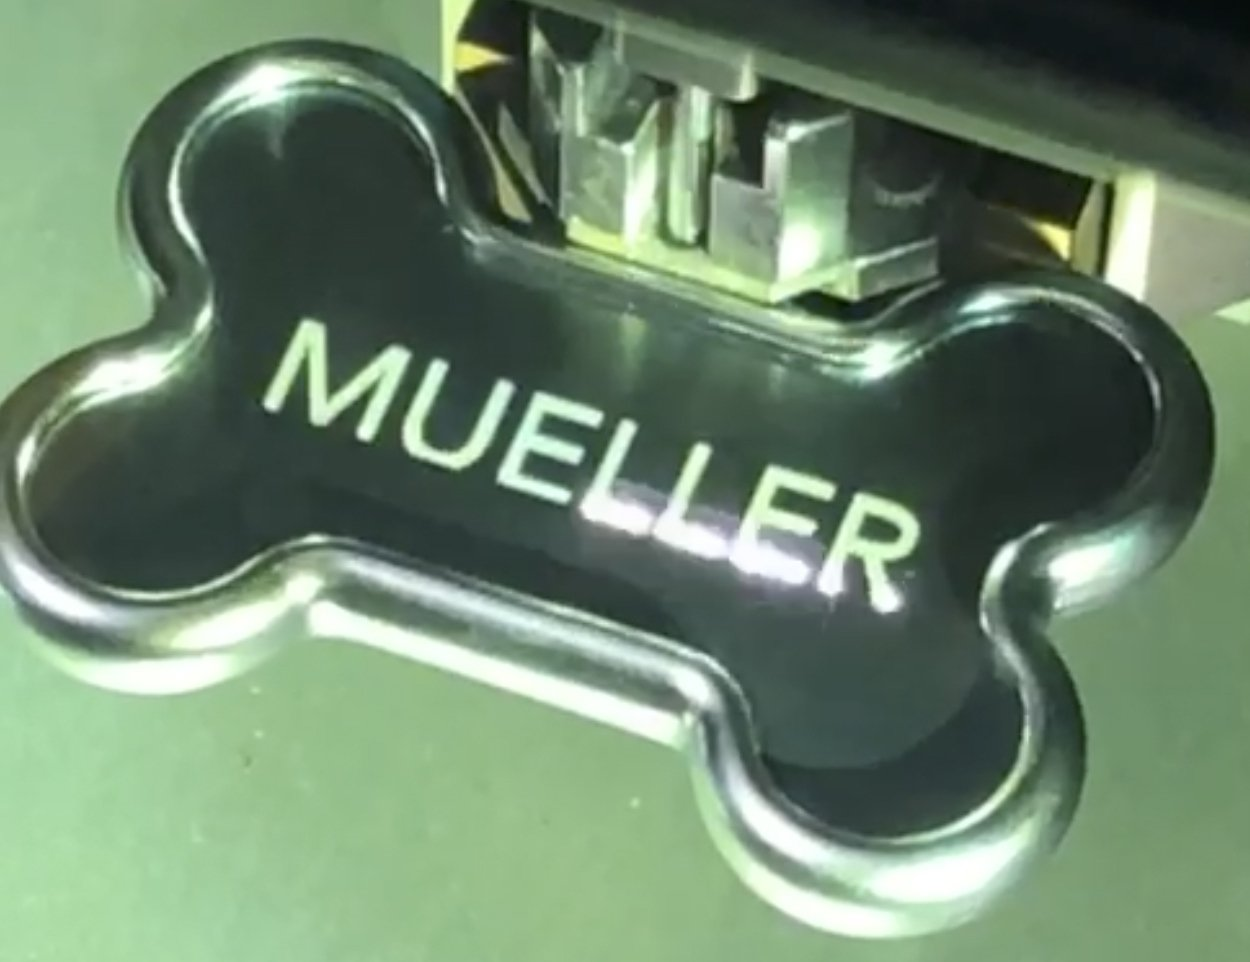 Arts and crafts see special counsel Robert Mueller as icon